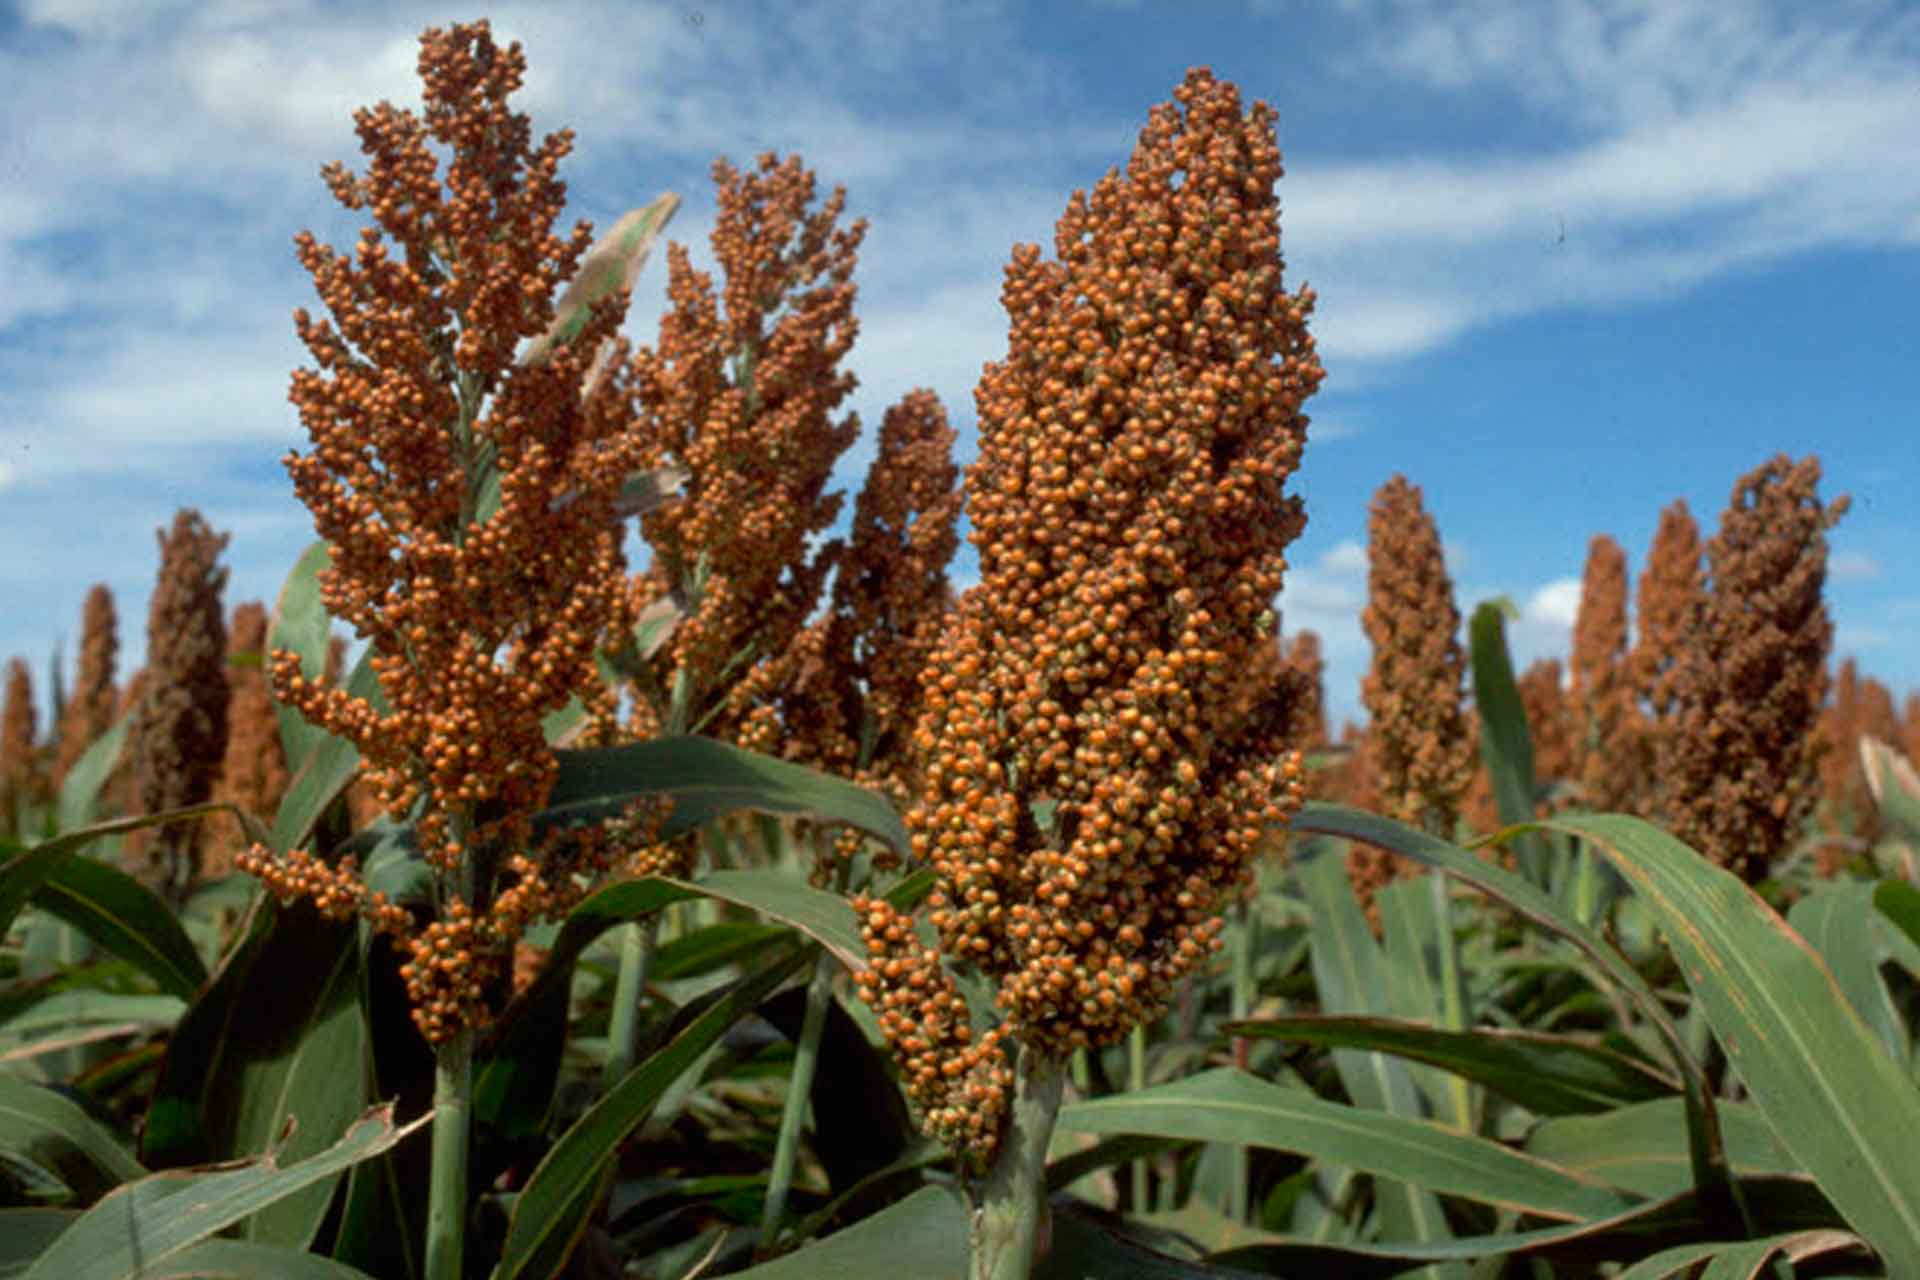 Sorghum bushels, reaching the goal.